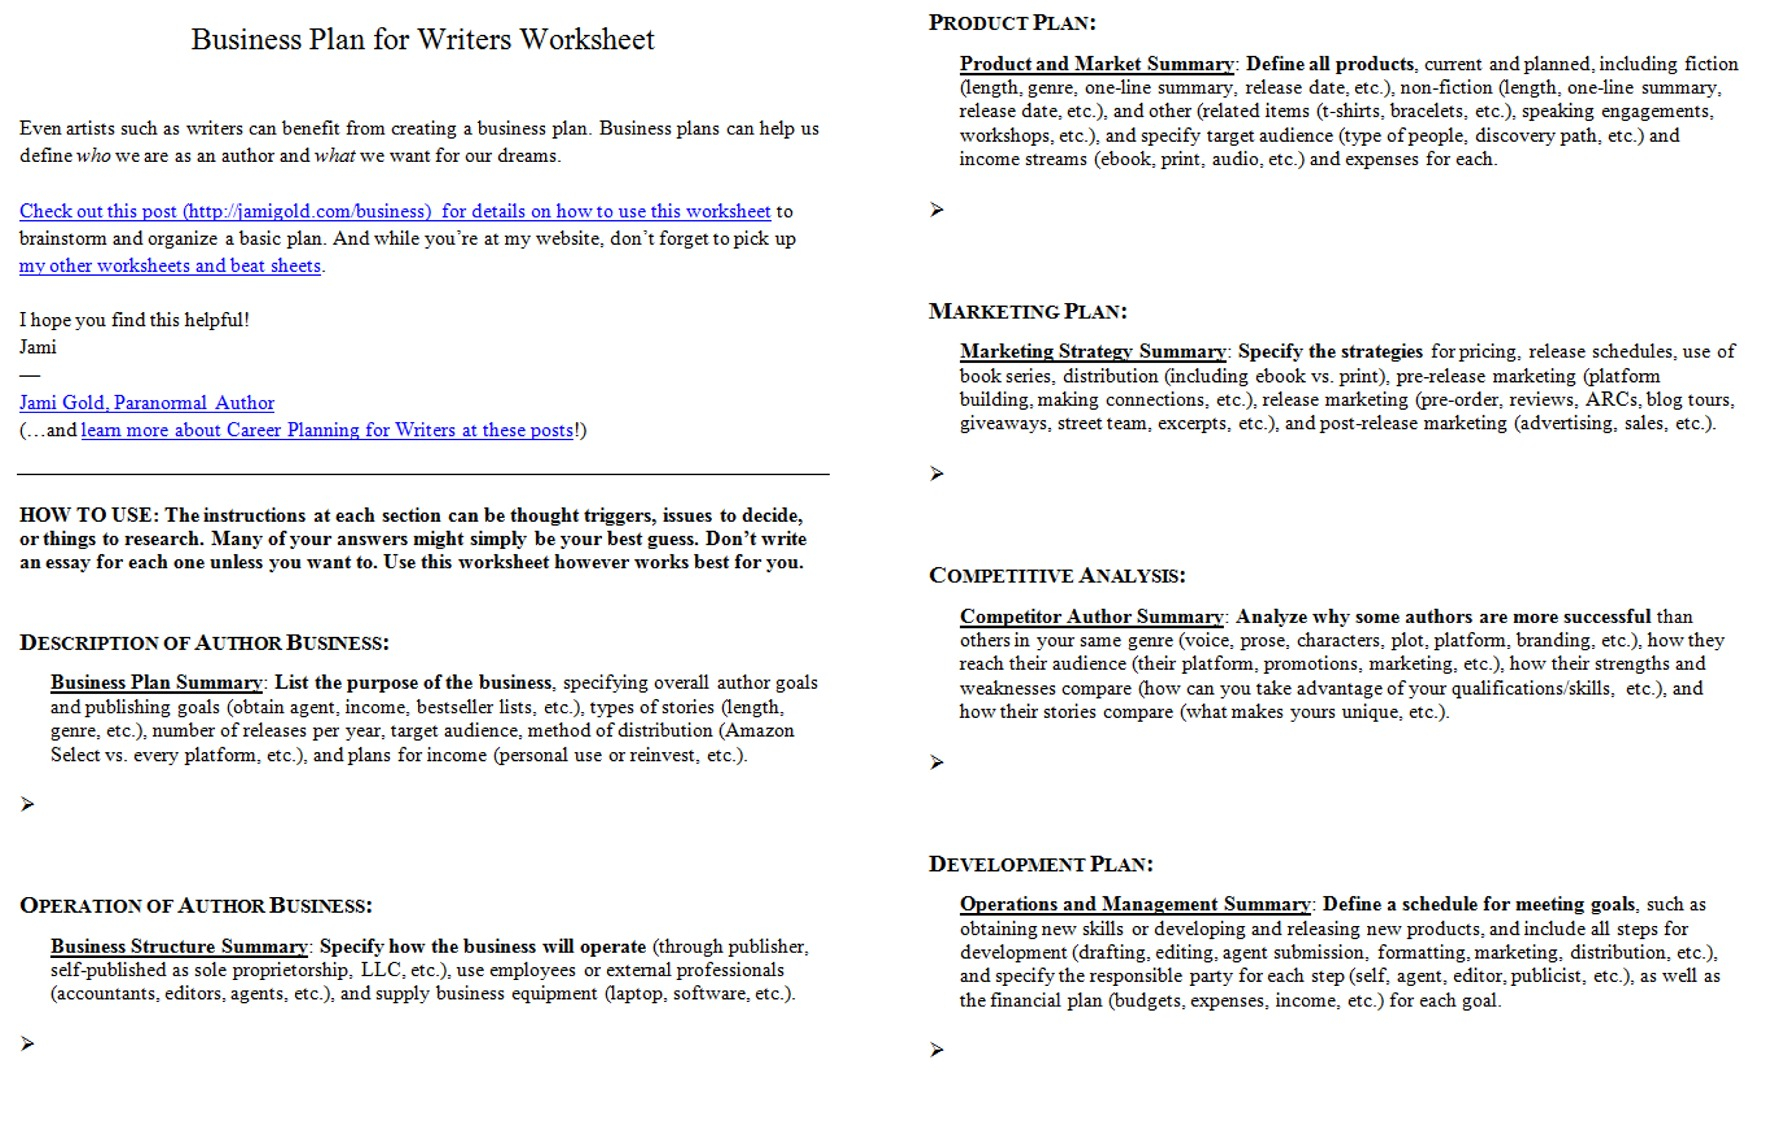 Proatmealus  Ravishing Worksheets For Writers  Jami Gold Paranormal Author With Goodlooking Screen Shot Of Both Pages Of The Business Plan For Writers Worksheet With Beauteous Th Grade Reading Comprehension Worksheets Free Also Ionic Compounds Names And Formulas Worksheet In Addition Polar Bear Worksheet And Adverbs Worksheet Th Grade As Well As Placement Value Worksheets Additionally Math Factoring Worksheets From Jamigoldcom With Proatmealus  Goodlooking Worksheets For Writers  Jami Gold Paranormal Author With Beauteous Screen Shot Of Both Pages Of The Business Plan For Writers Worksheet And Ravishing Th Grade Reading Comprehension Worksheets Free Also Ionic Compounds Names And Formulas Worksheet In Addition Polar Bear Worksheet From Jamigoldcom